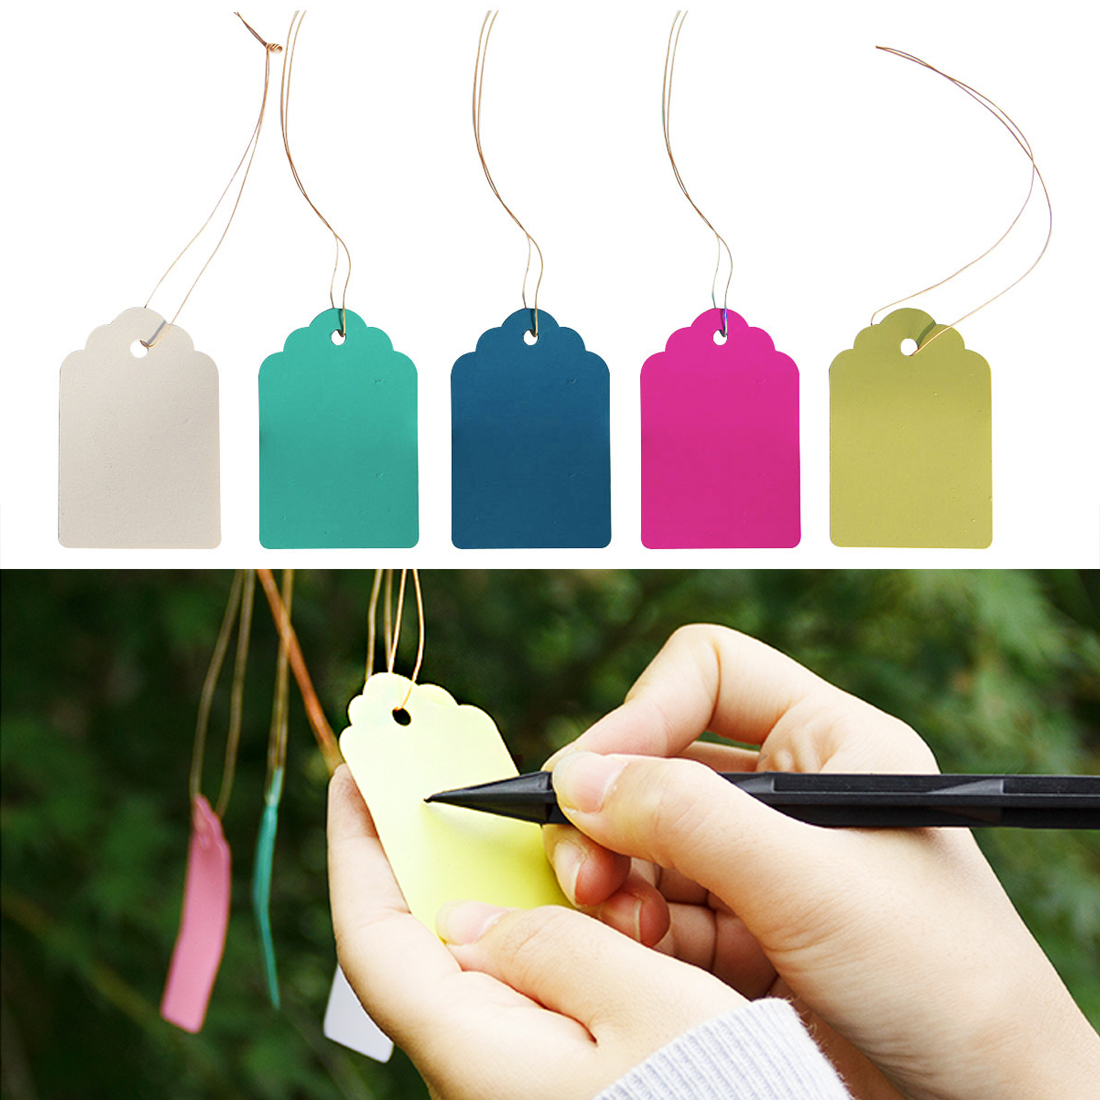 100Pcs Plants Labels Hang Tag Seedling Garden Flower Pot Garden Nursery Pots Planters Flower Thick Plant Tag Label Marker